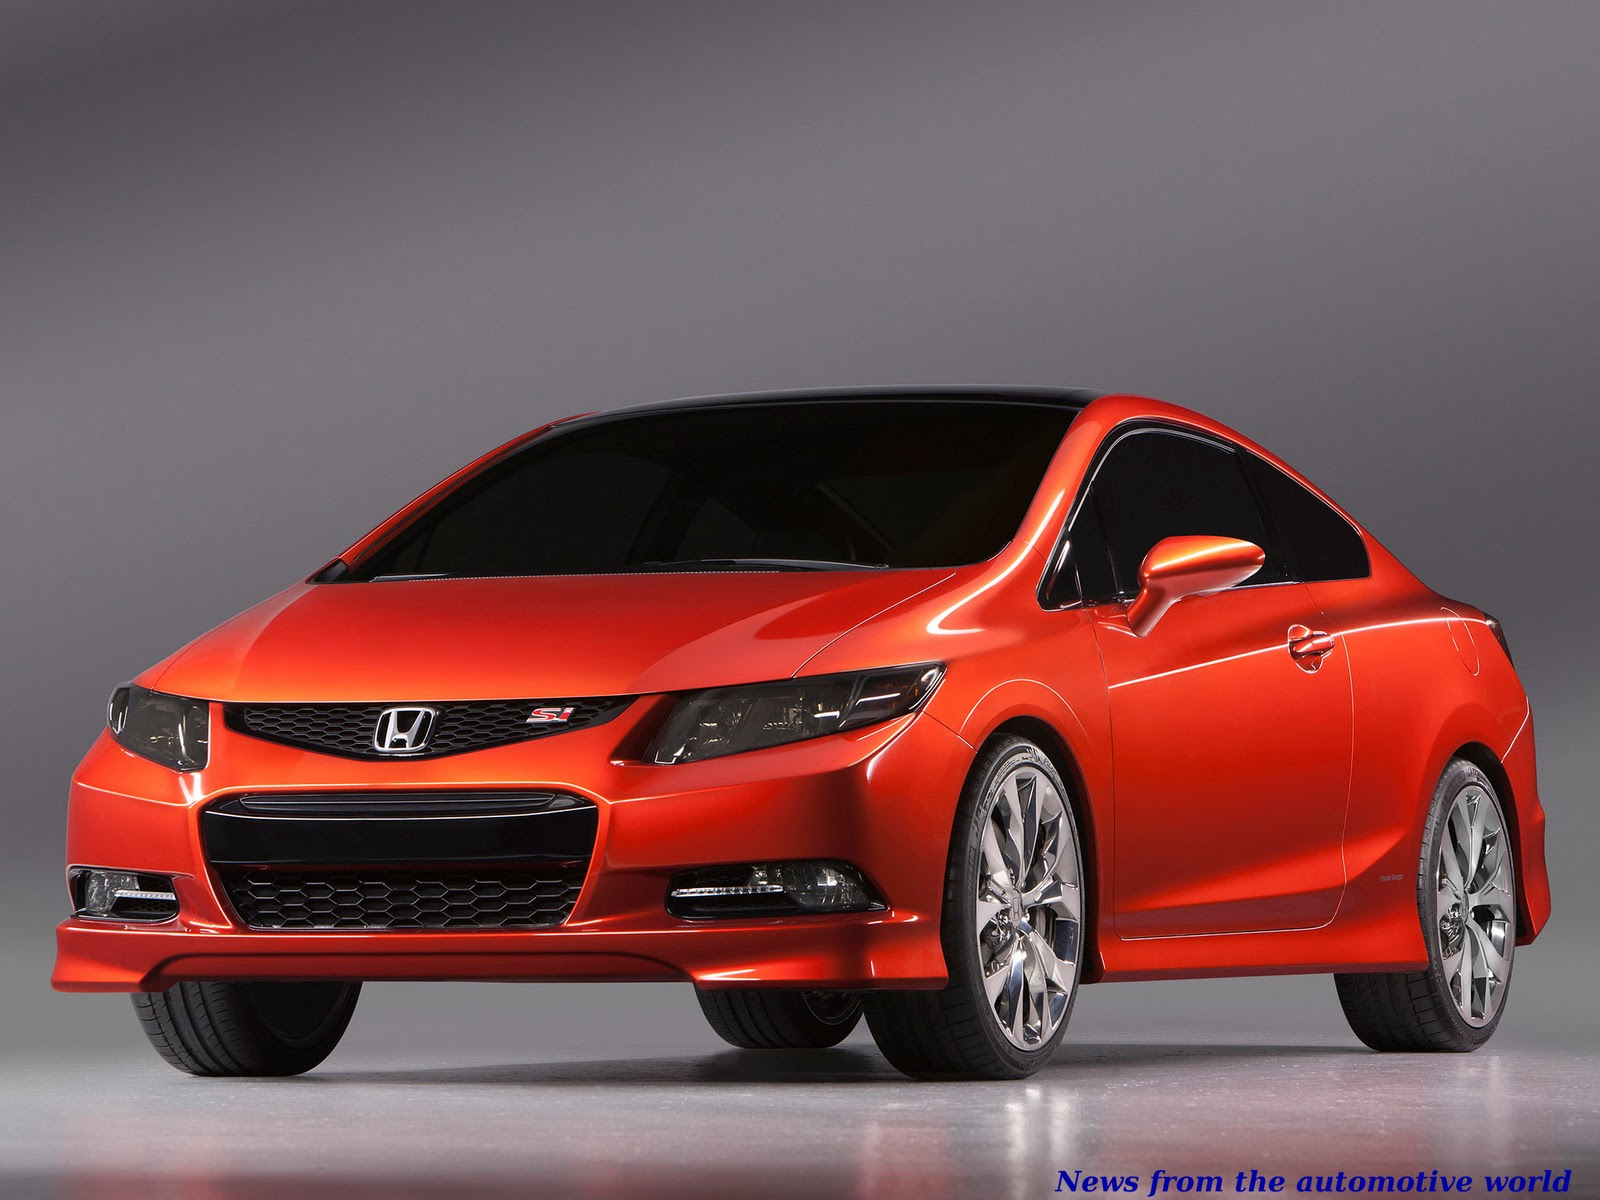 2011 Honda Civic Si News From The Automotive World